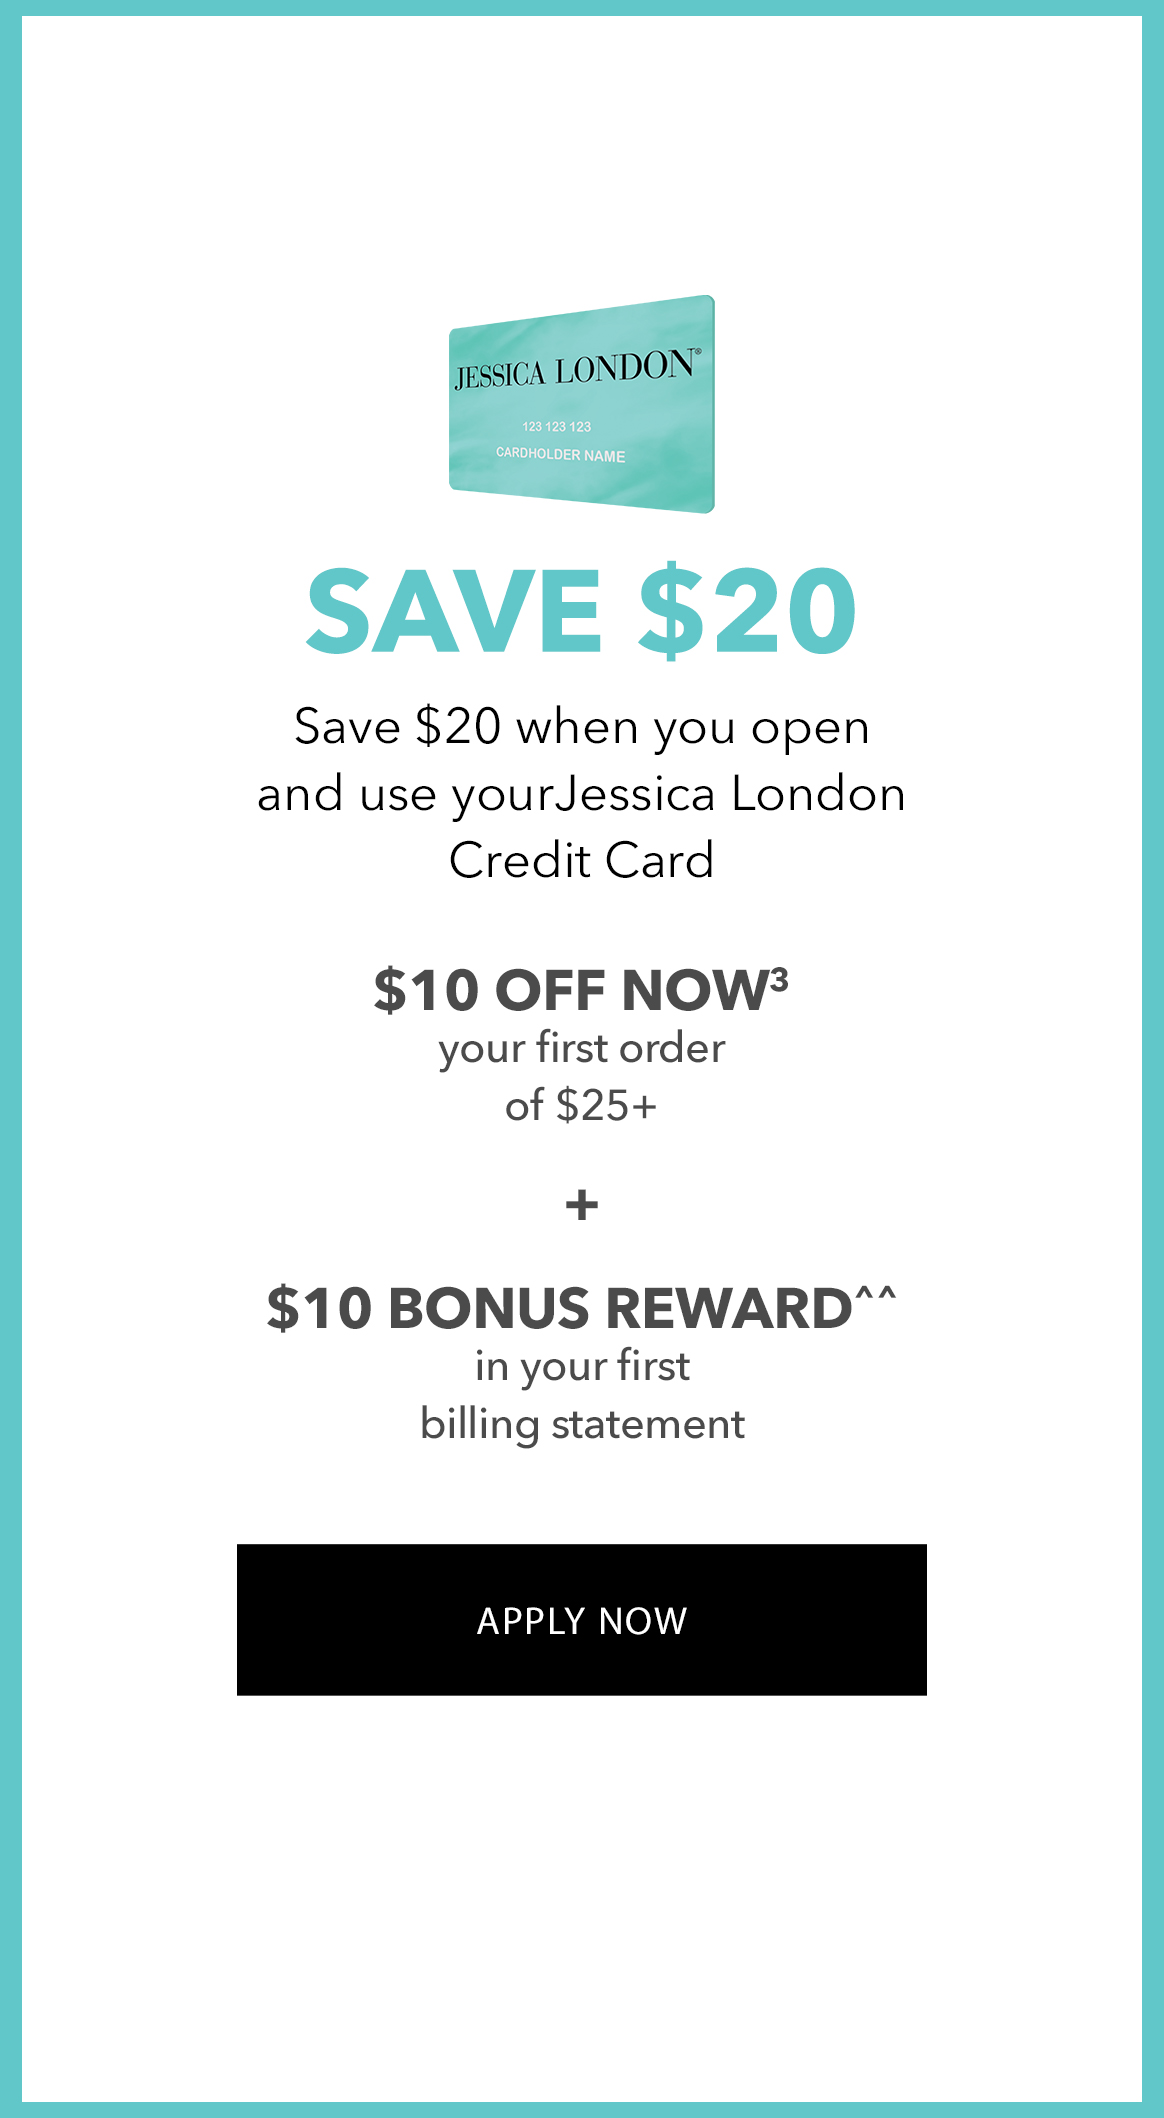 Save $20 when you open and use your Jessica London Credit Card. $10 off now your first order of $25+ Plus  $10 bonus reward in your first billing statement - APPLY NOW